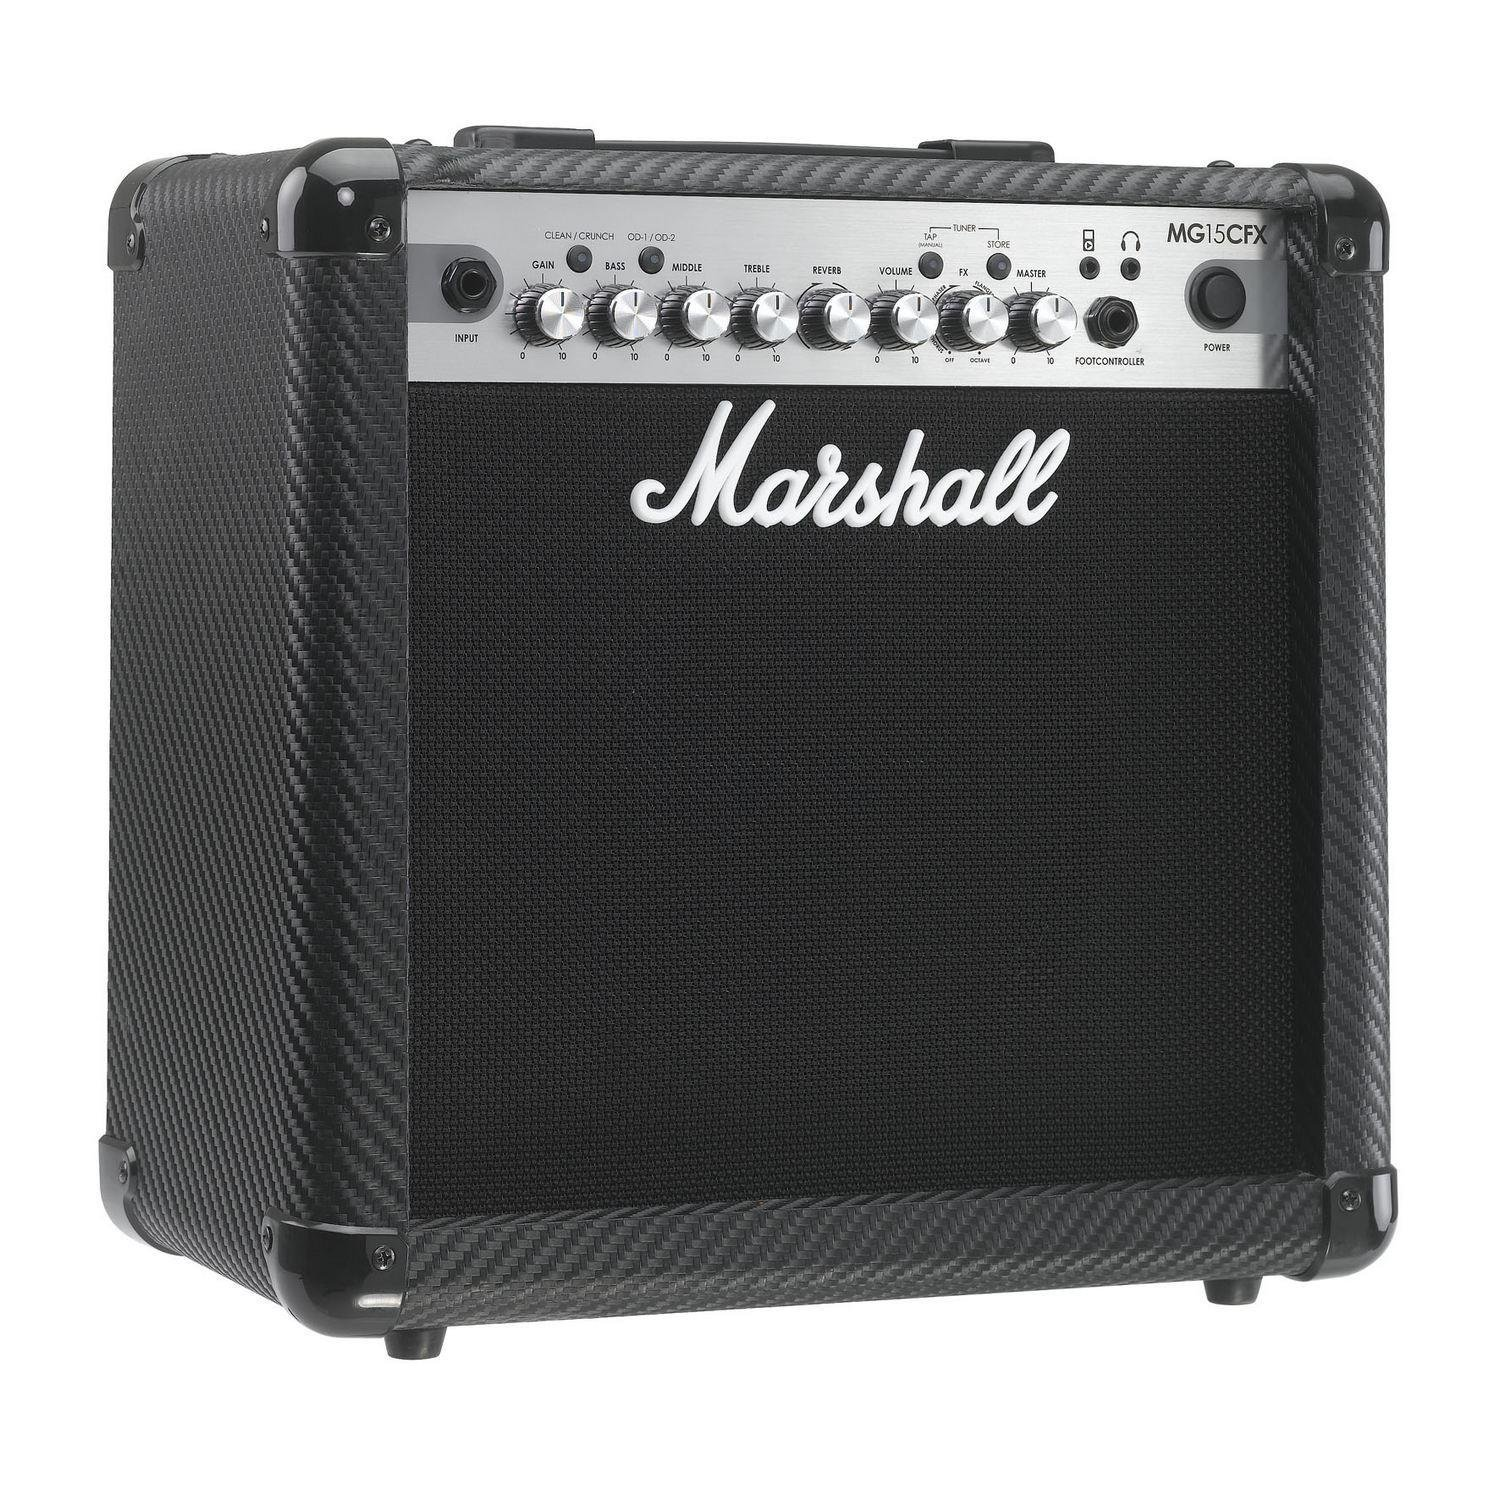 Marshall MG15CFX MG Series 15-Watt Guitar Combo Amp by Marshall Amps